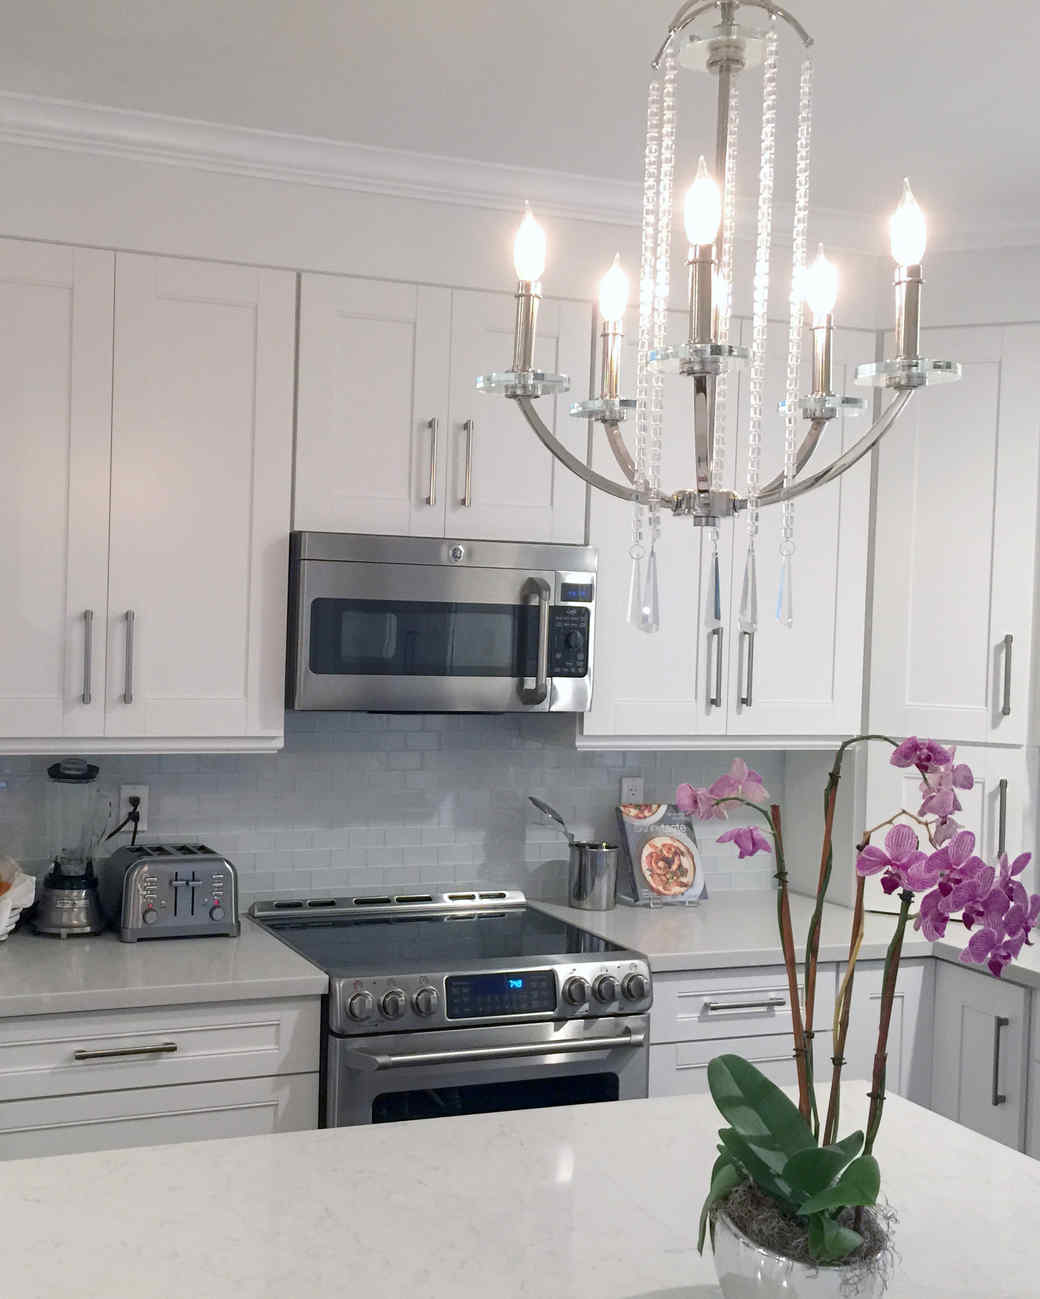 Lighting For The Kitchen: 6 Bright Kitchen Lighting Ideas: See How New Fixtures